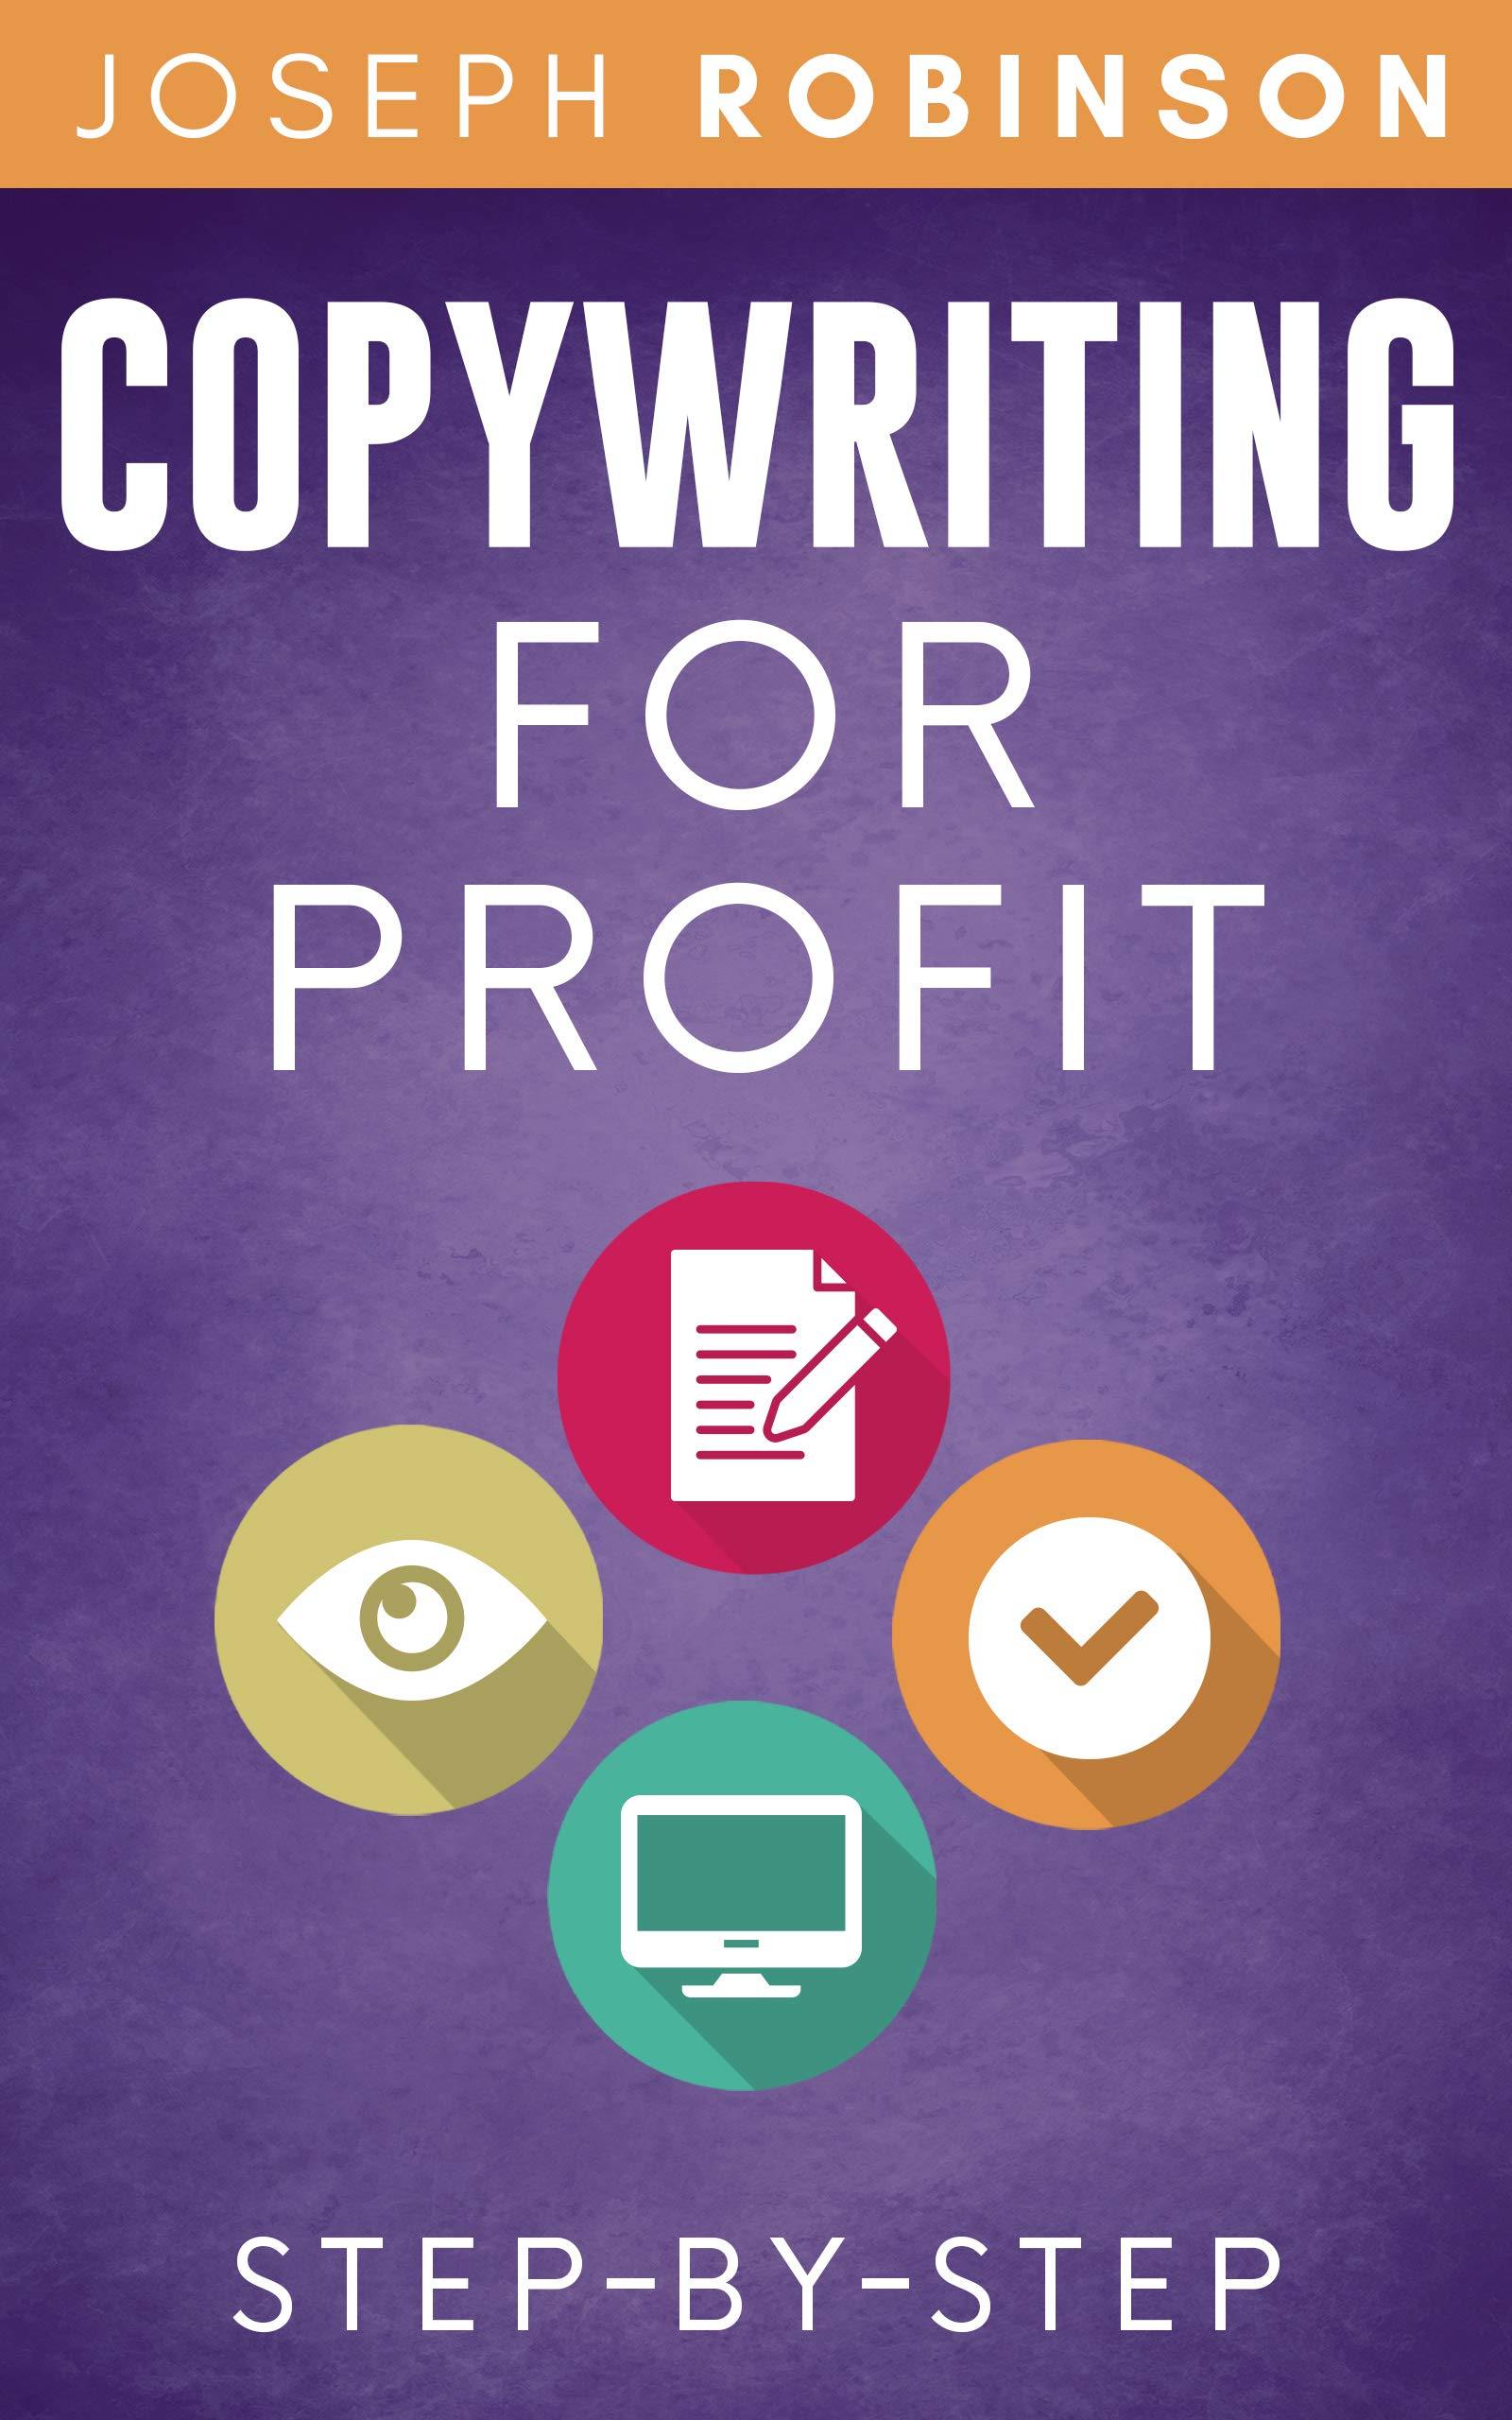 Copywriting For Profit: Learn Step-By-Step How To Write A Copy That Sells And Become A Successful Copywriter